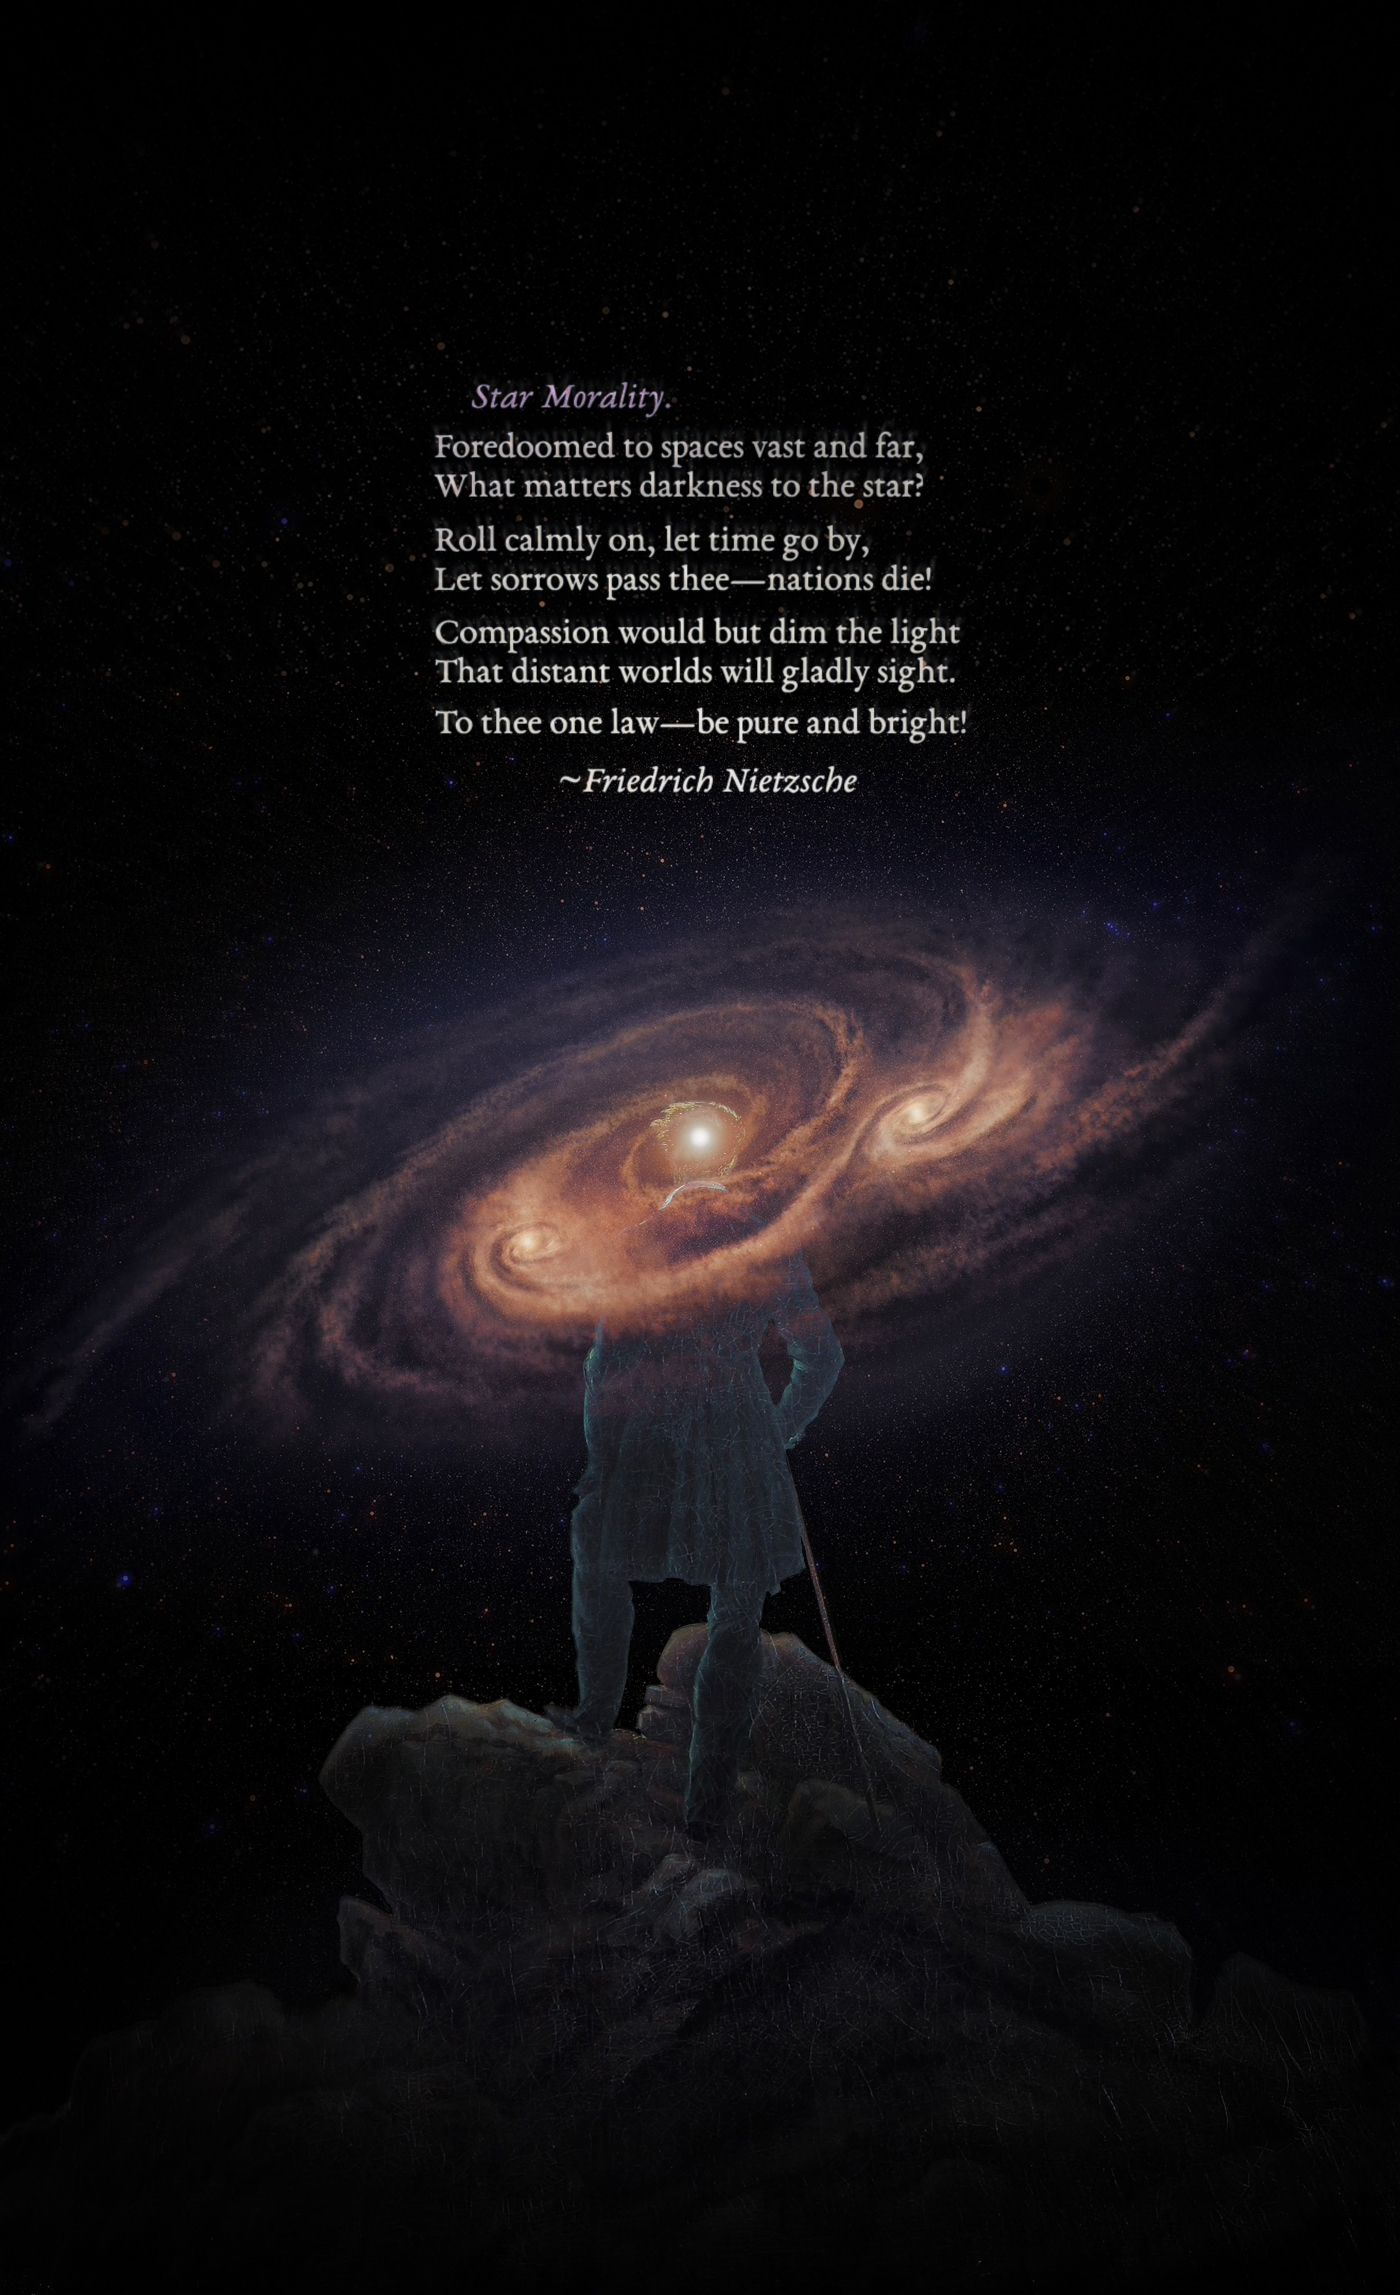 """Foredoomed to spaces vast and far, what matters darkness to the star?"" –Friedrich Nietzsche [1400 x 2295] [OC]"